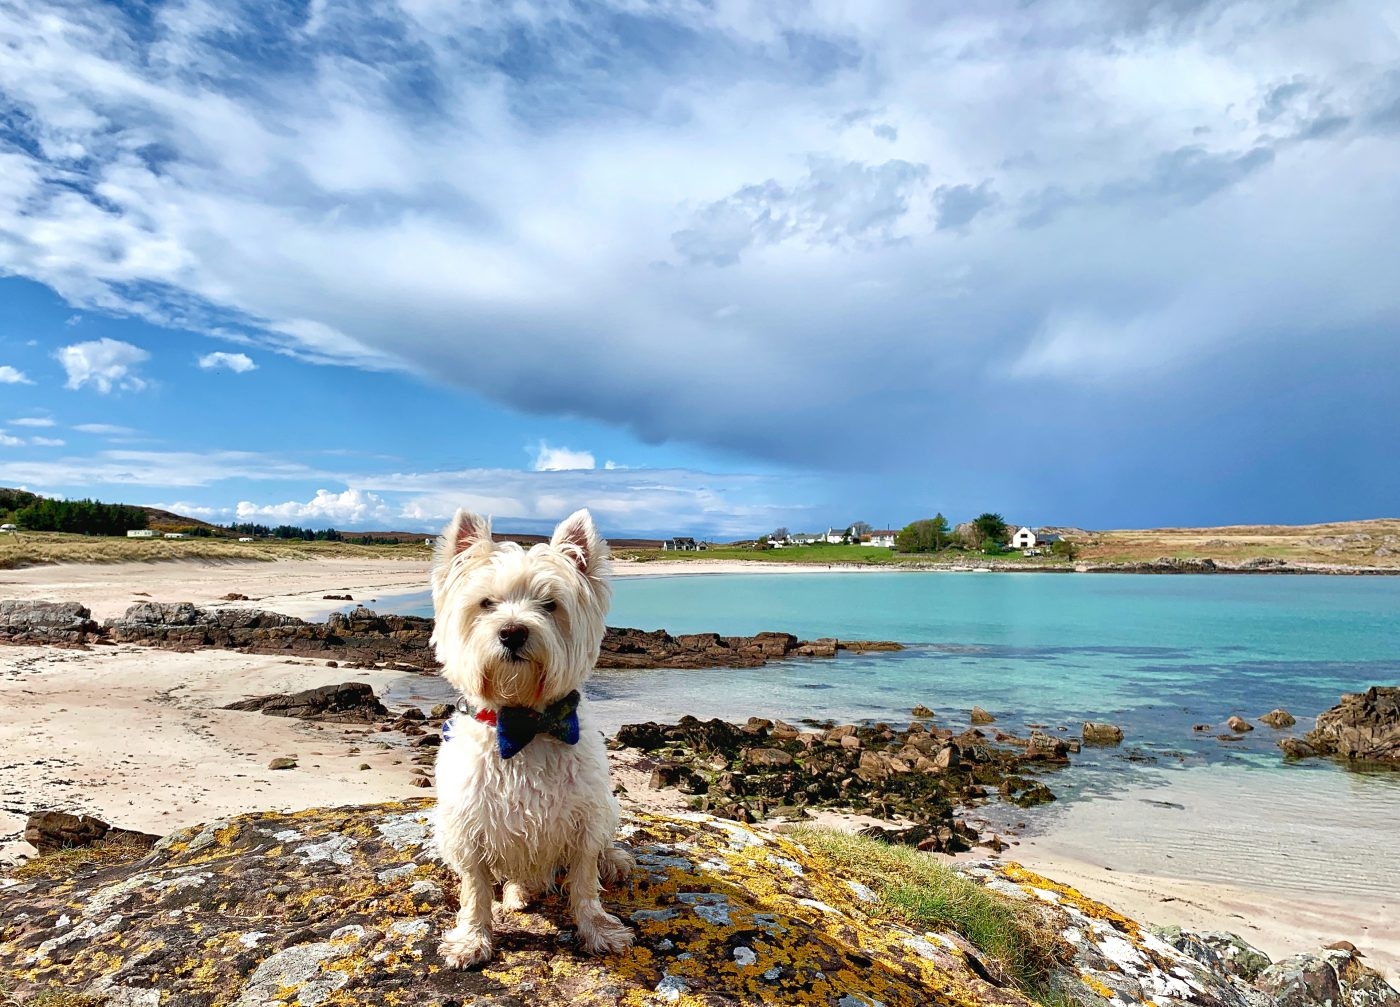 Scotland with the Wee White Dug – A Scottish Travel Blog